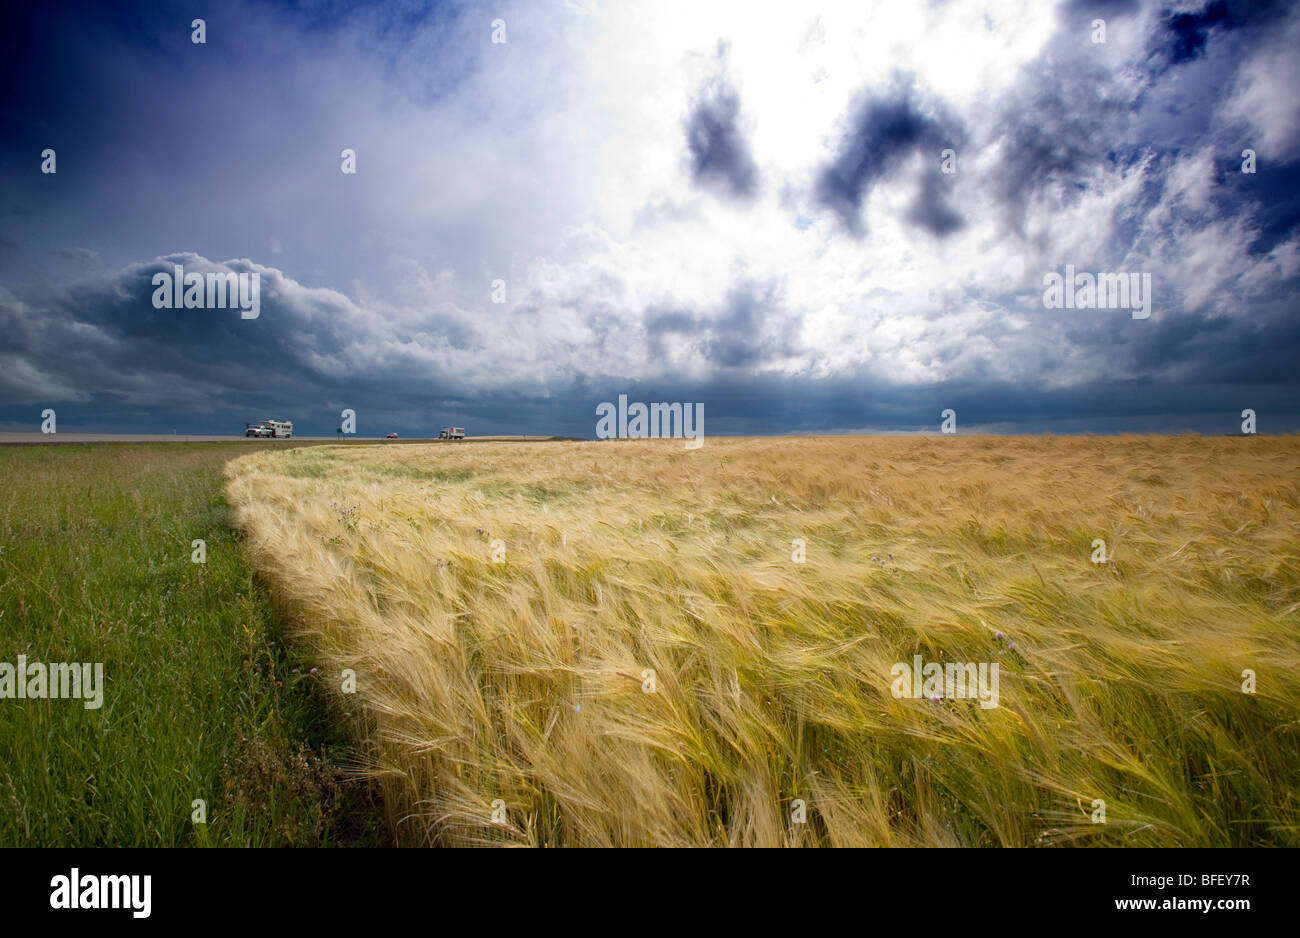 Thunder storm moving over grain field, Ridge Road 221, Alberta, Canada, weather, cloud, truck, car, agriculture - Stock Image